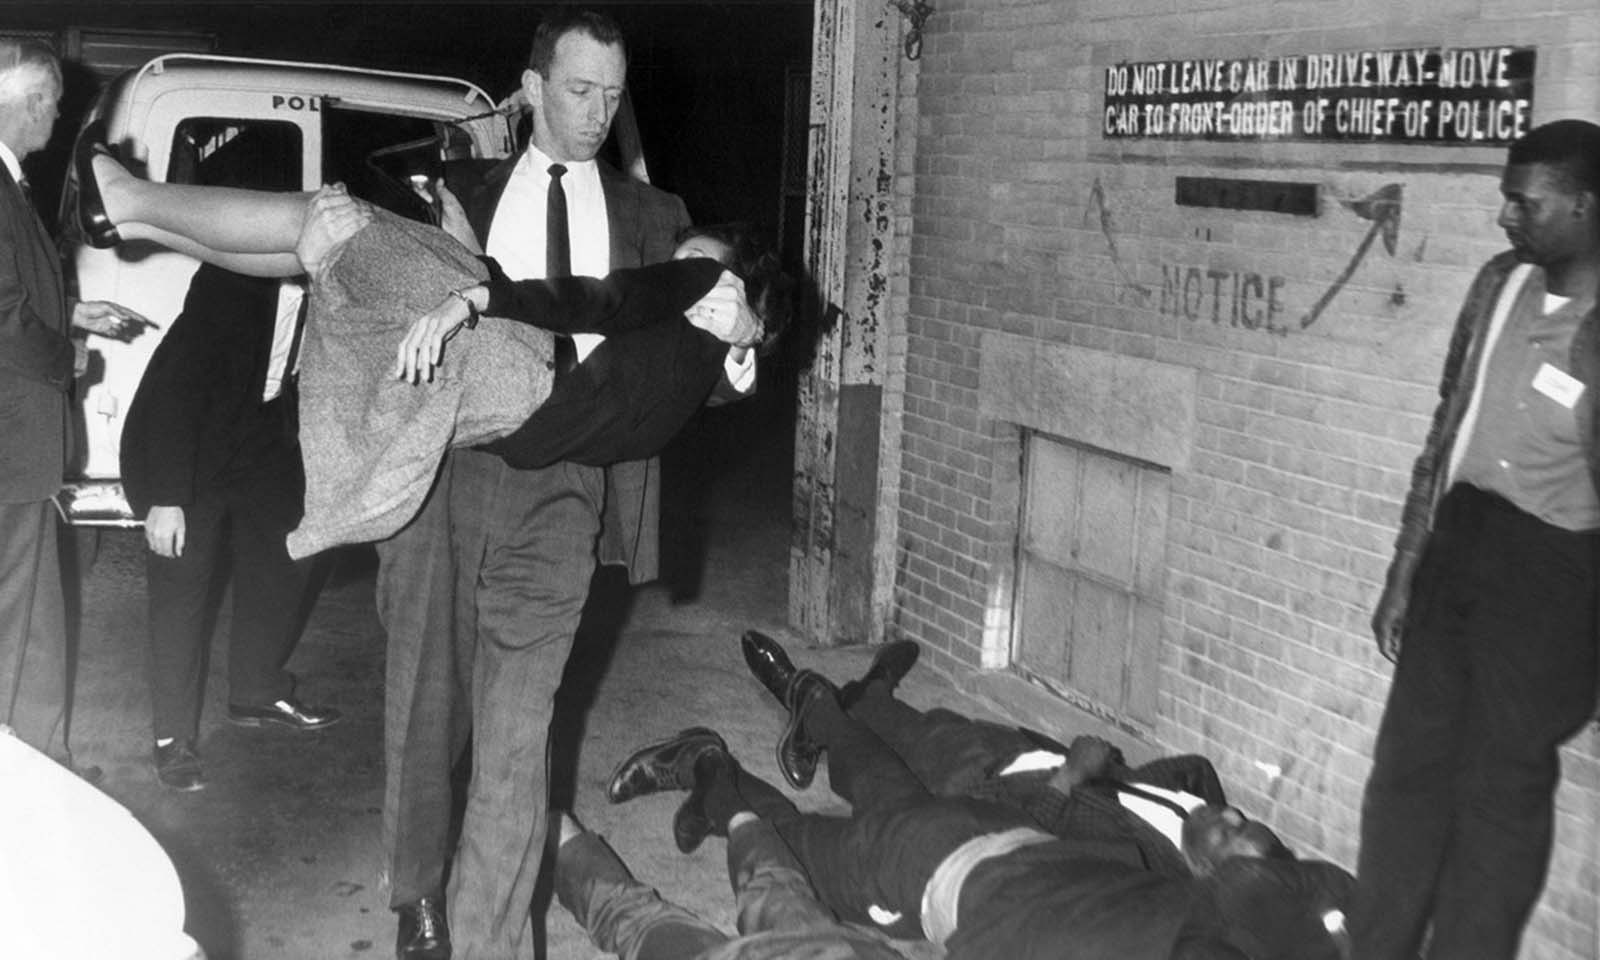 A police officer carrying a young girl walks past three civil rights demonstrators on the ground next to the Tulsa, Oklahoma, police station on April 2, 1964. The demonstrators were part of 54 arrested at a Tulsa restaurant. Members of the group, backed by the Congress of Racial Equality, went limp when arrested and forced officers to carry them from the restaurant and the paddy wagon.